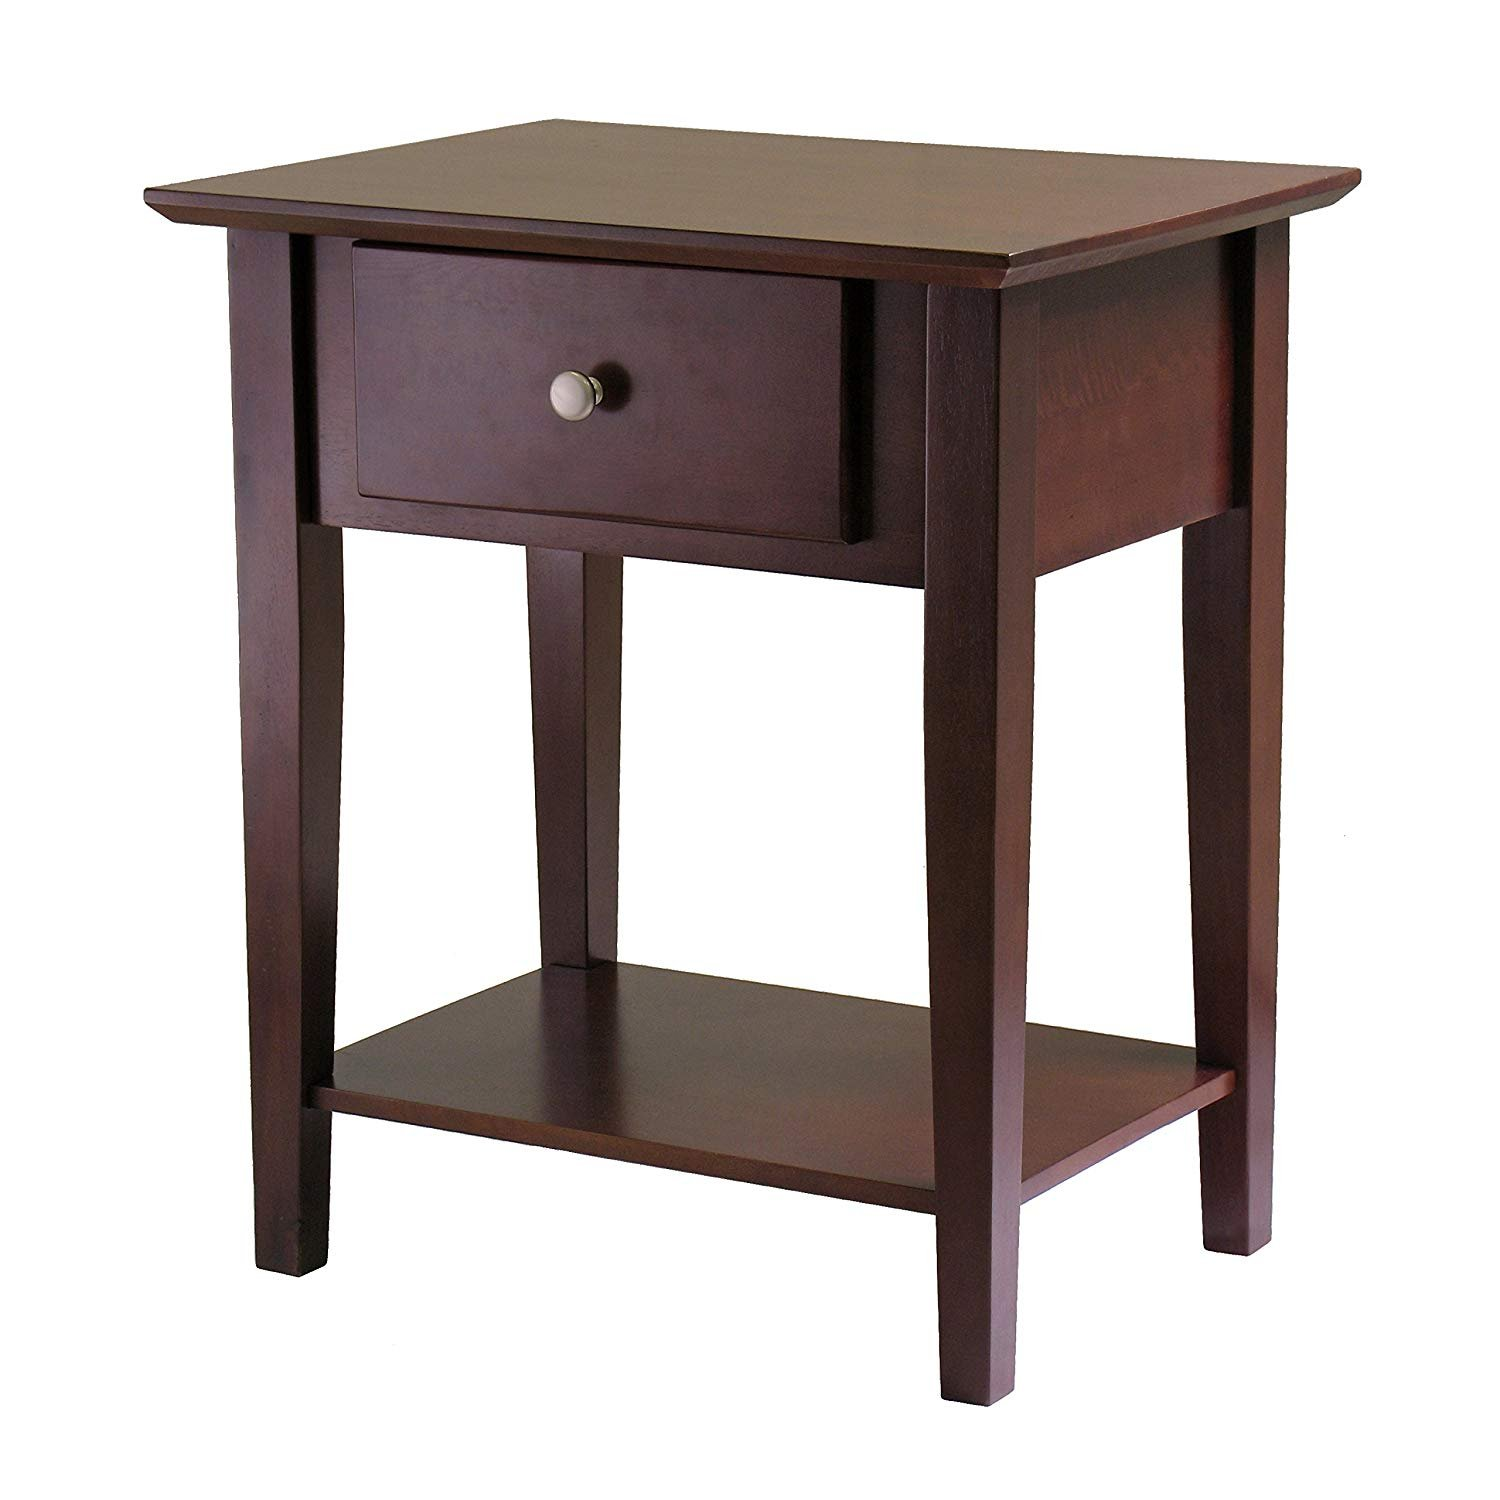 SJ Collection B12600002 Holmes Night Stand with Drawer Espresso, Small, Antique Walnut